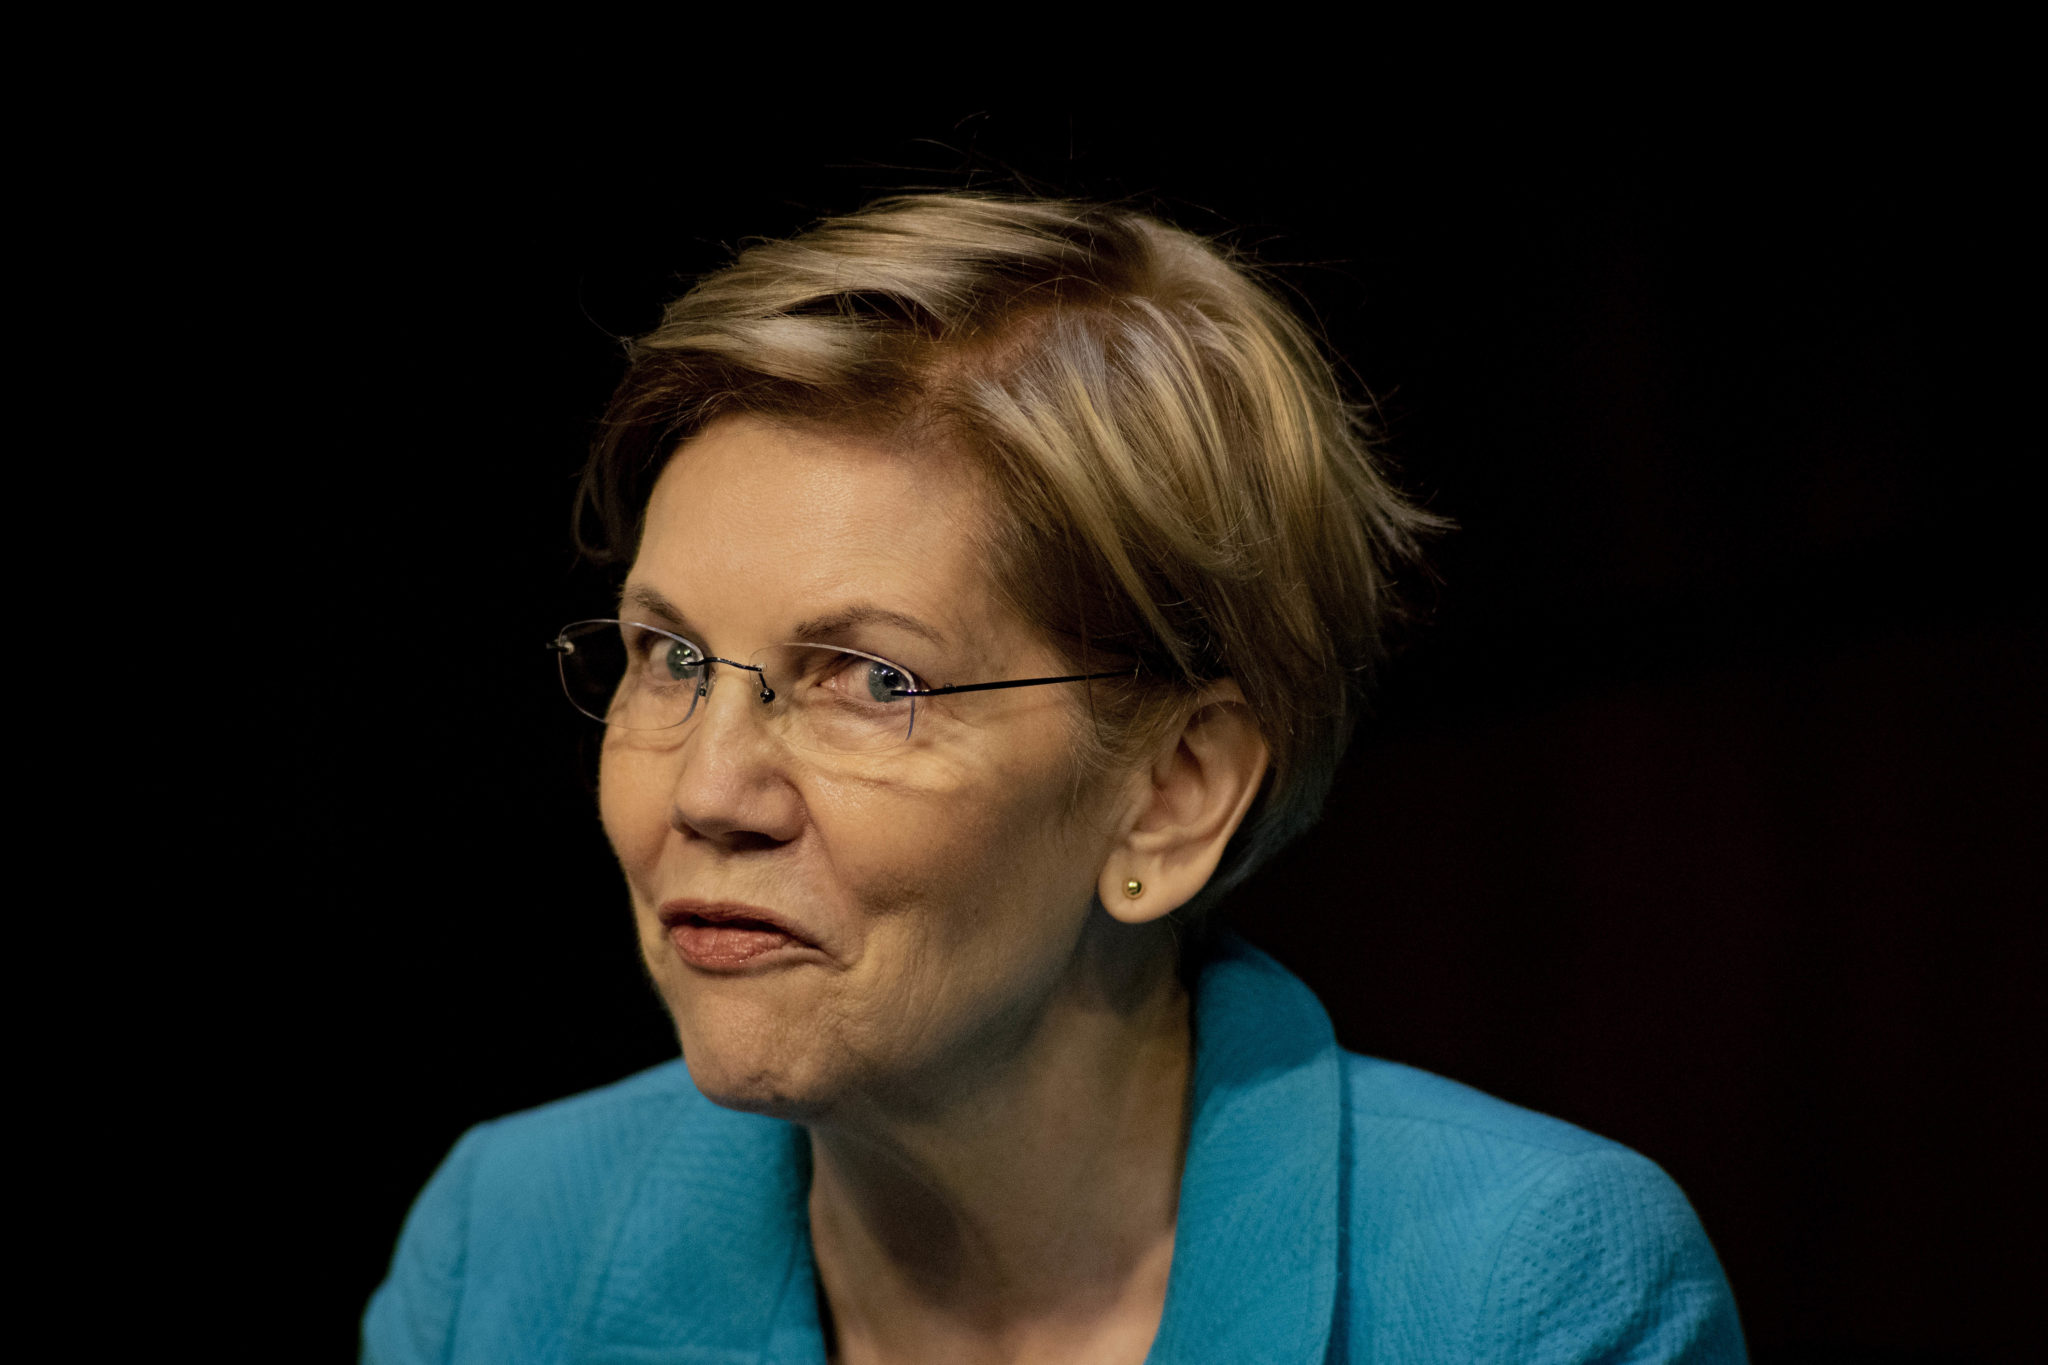 Senator Elizabeth Warren (D-MA), July 17, 2018